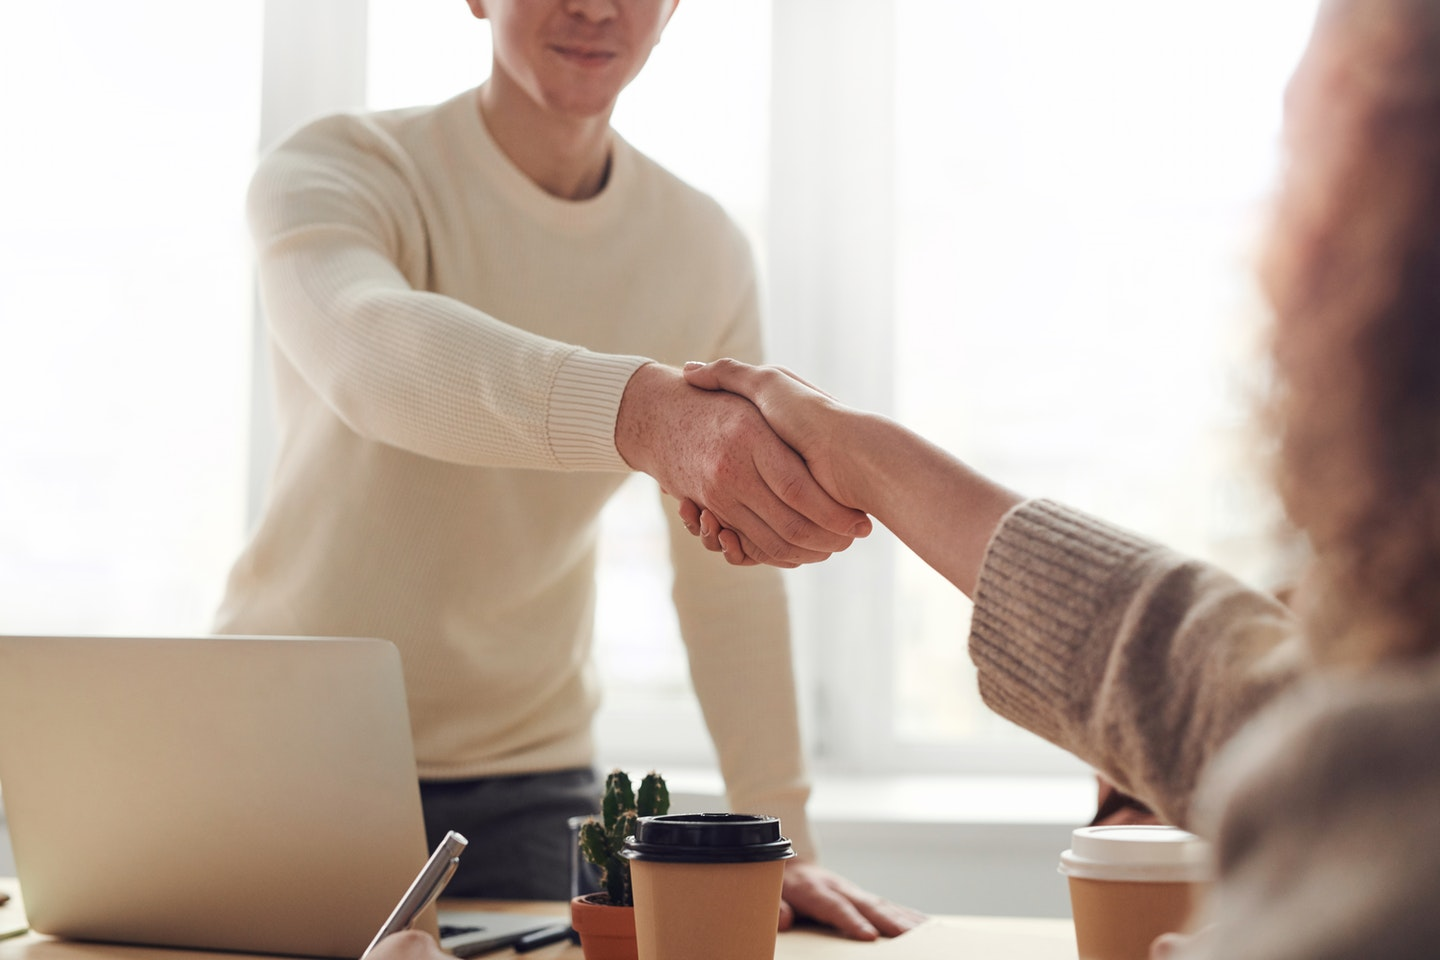 job candidate shaking hands with HR manager at job interview